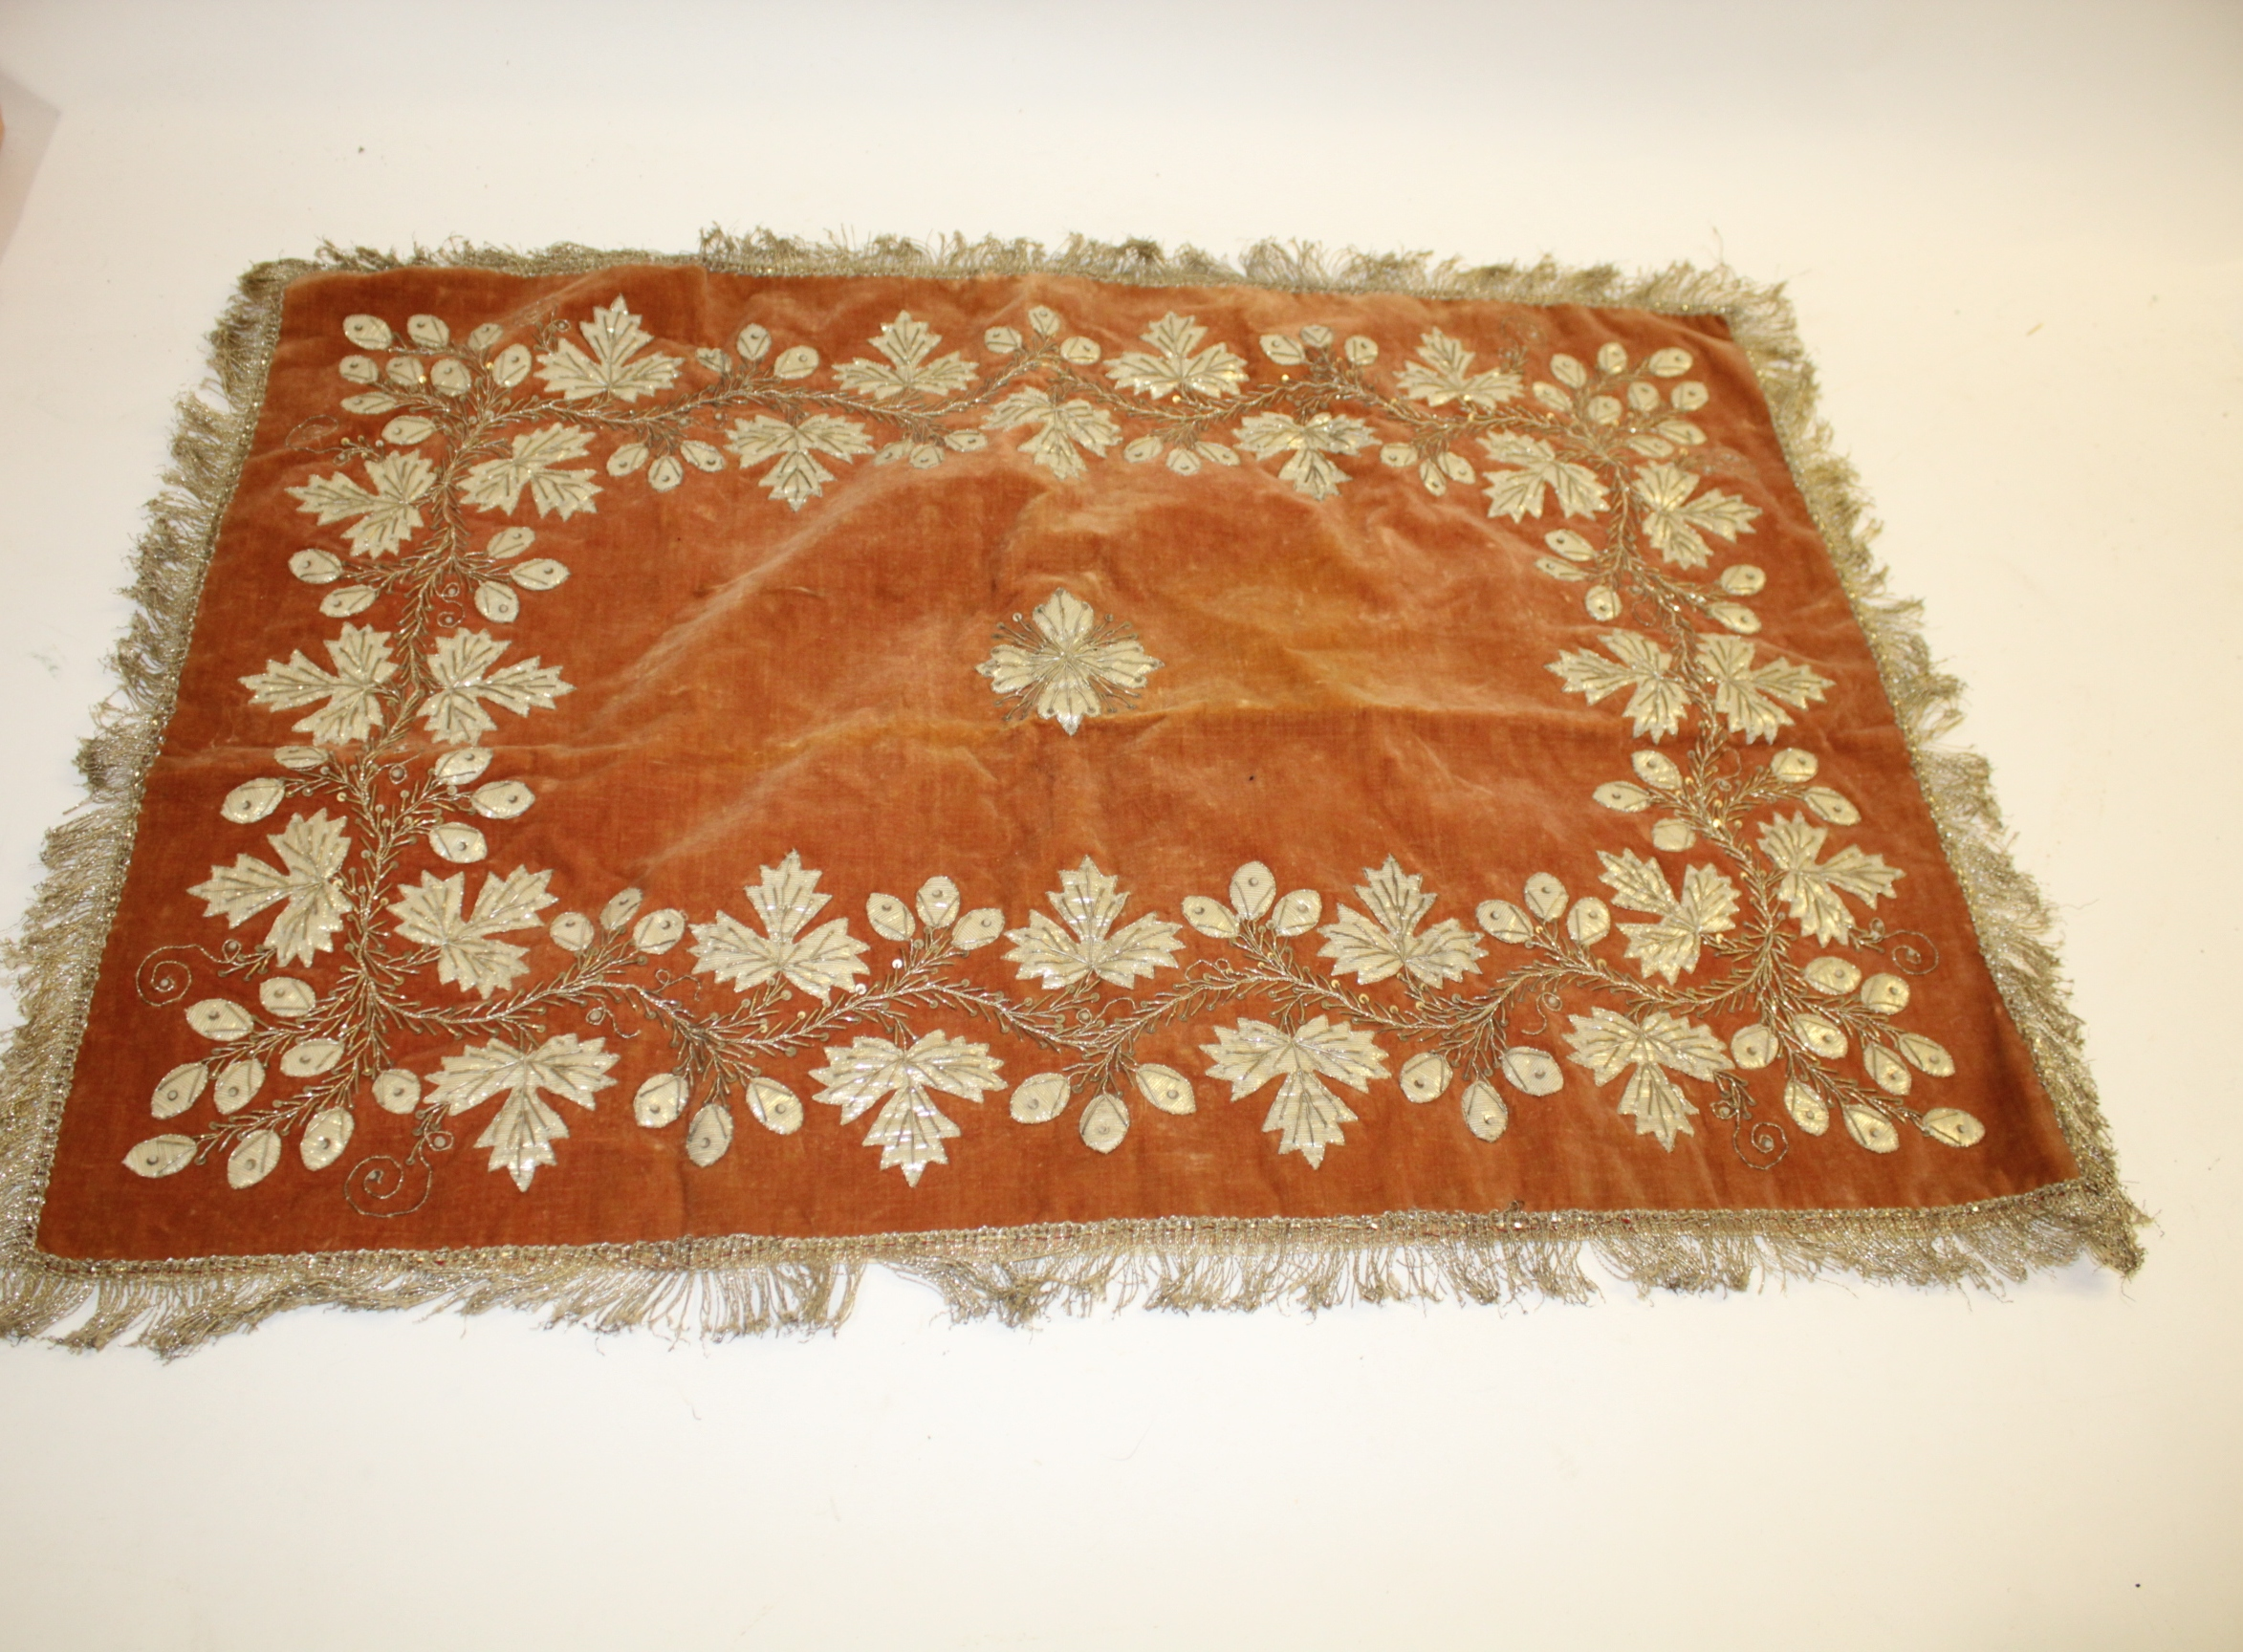 Lot 1895 - EMBROIDERED PANEL embroidered with flowers and leaves in metallic thread, mounted on velvet and with